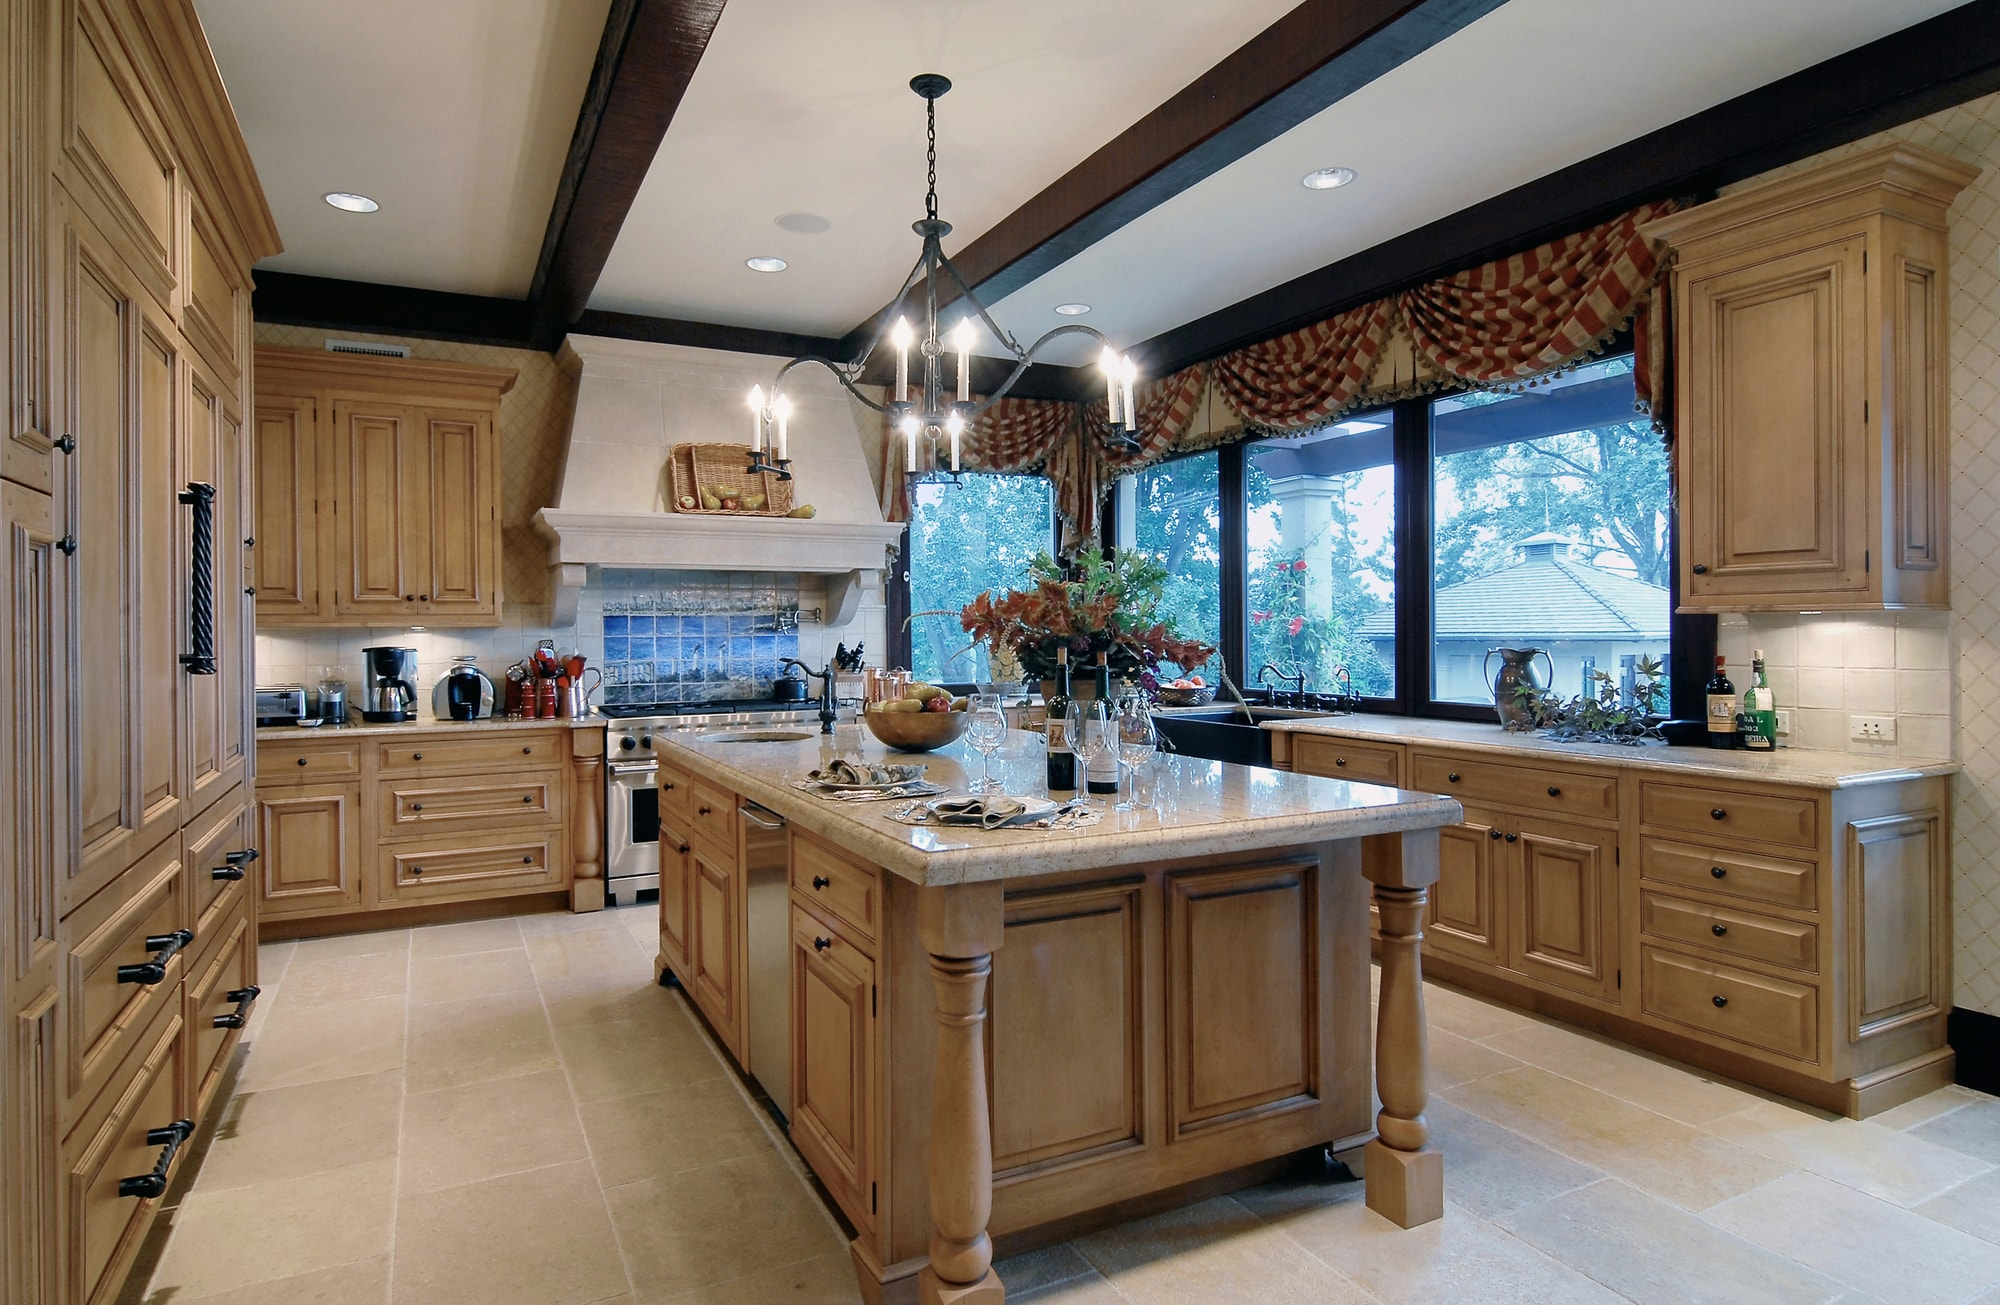 Traditional style kitchen with spacious floor and wooden cabinets